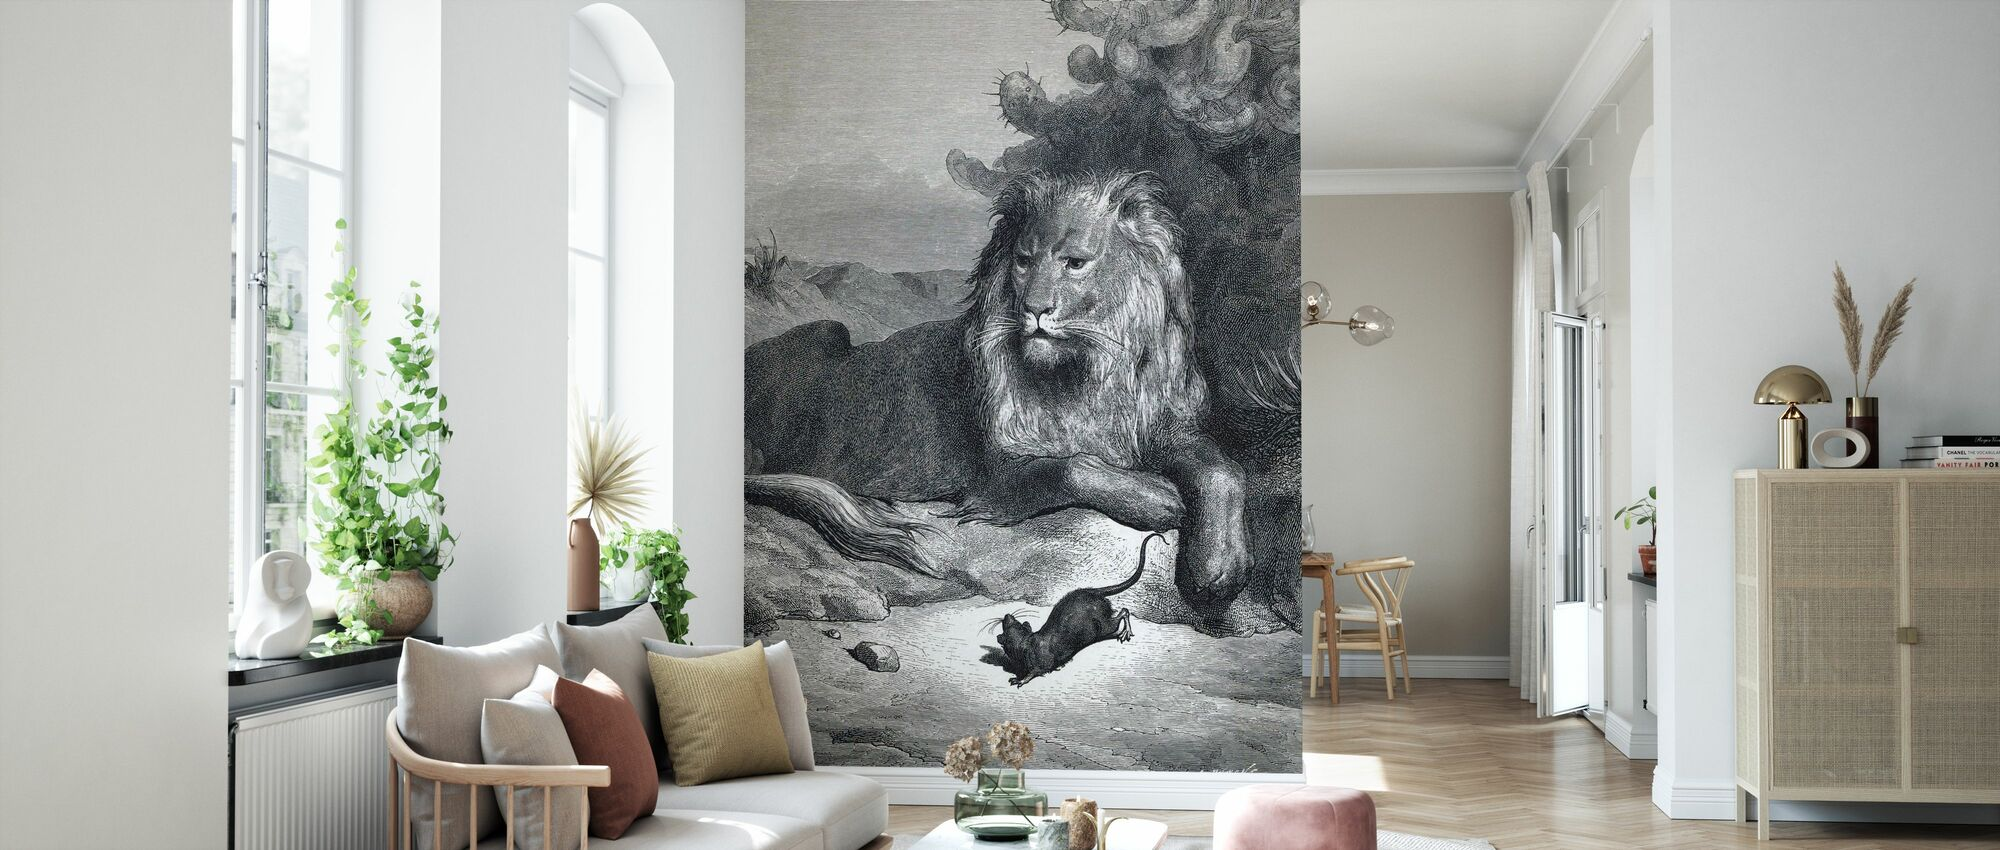 Lion and the Mouse - Gustave Dore - Wallpaper - Living Room